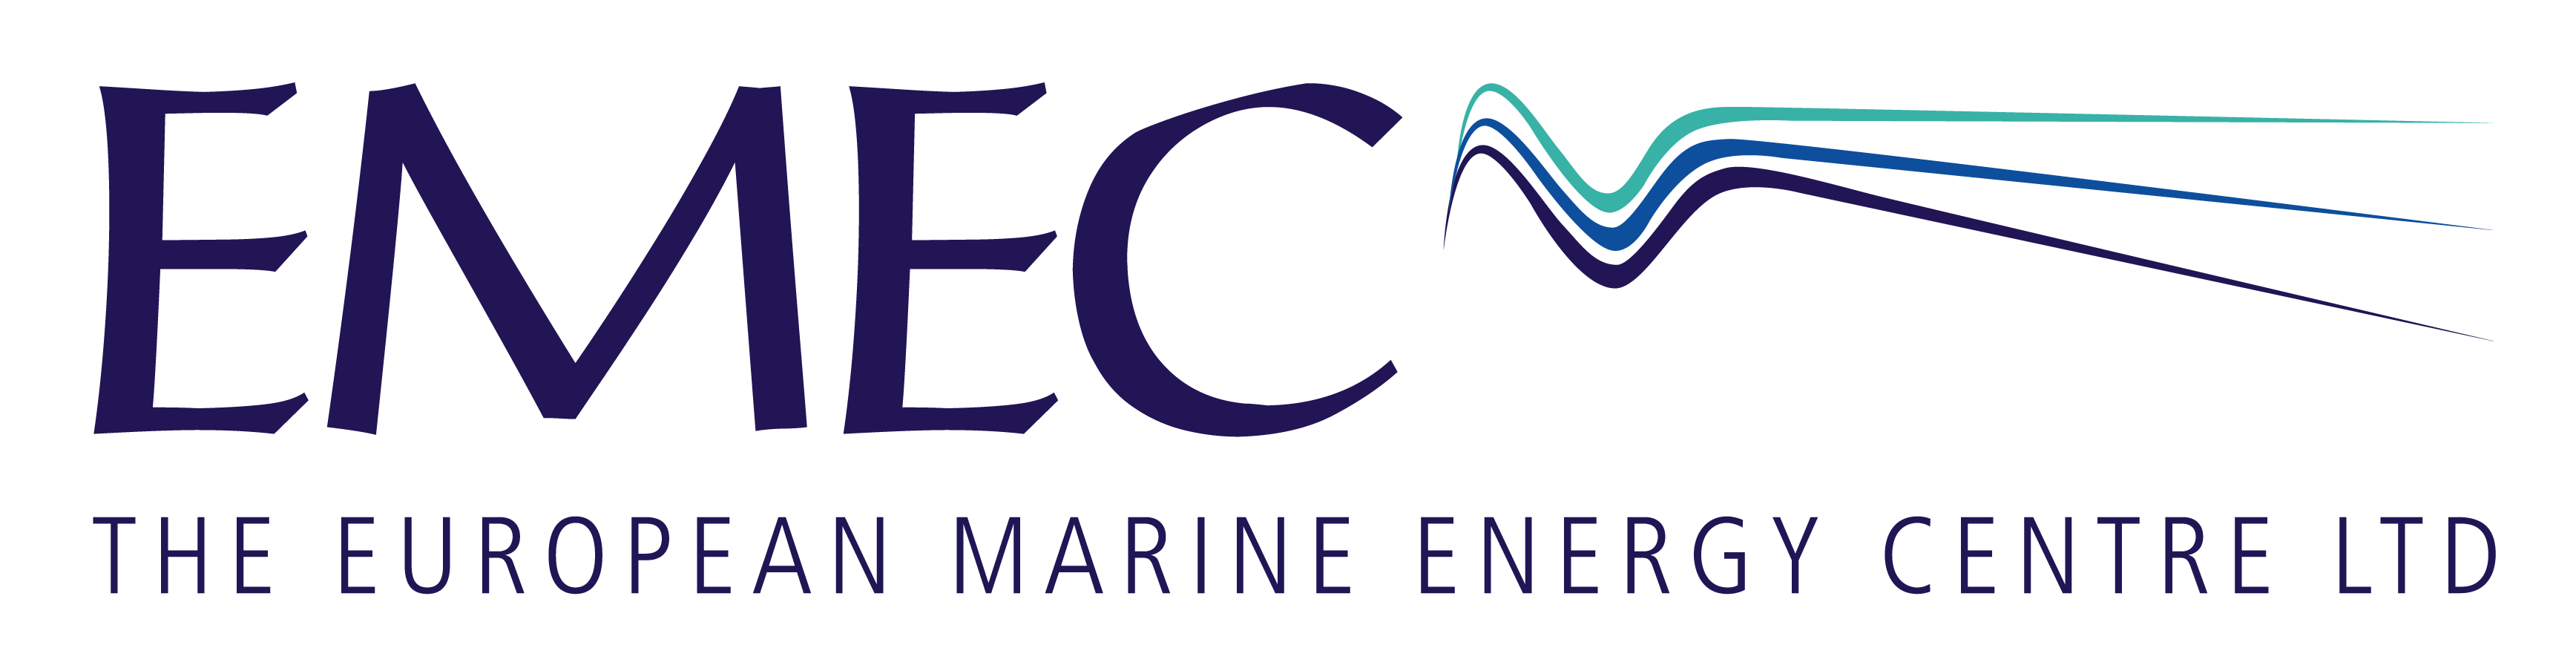 Organisation Logo - European Marine Energy Centre Ltd